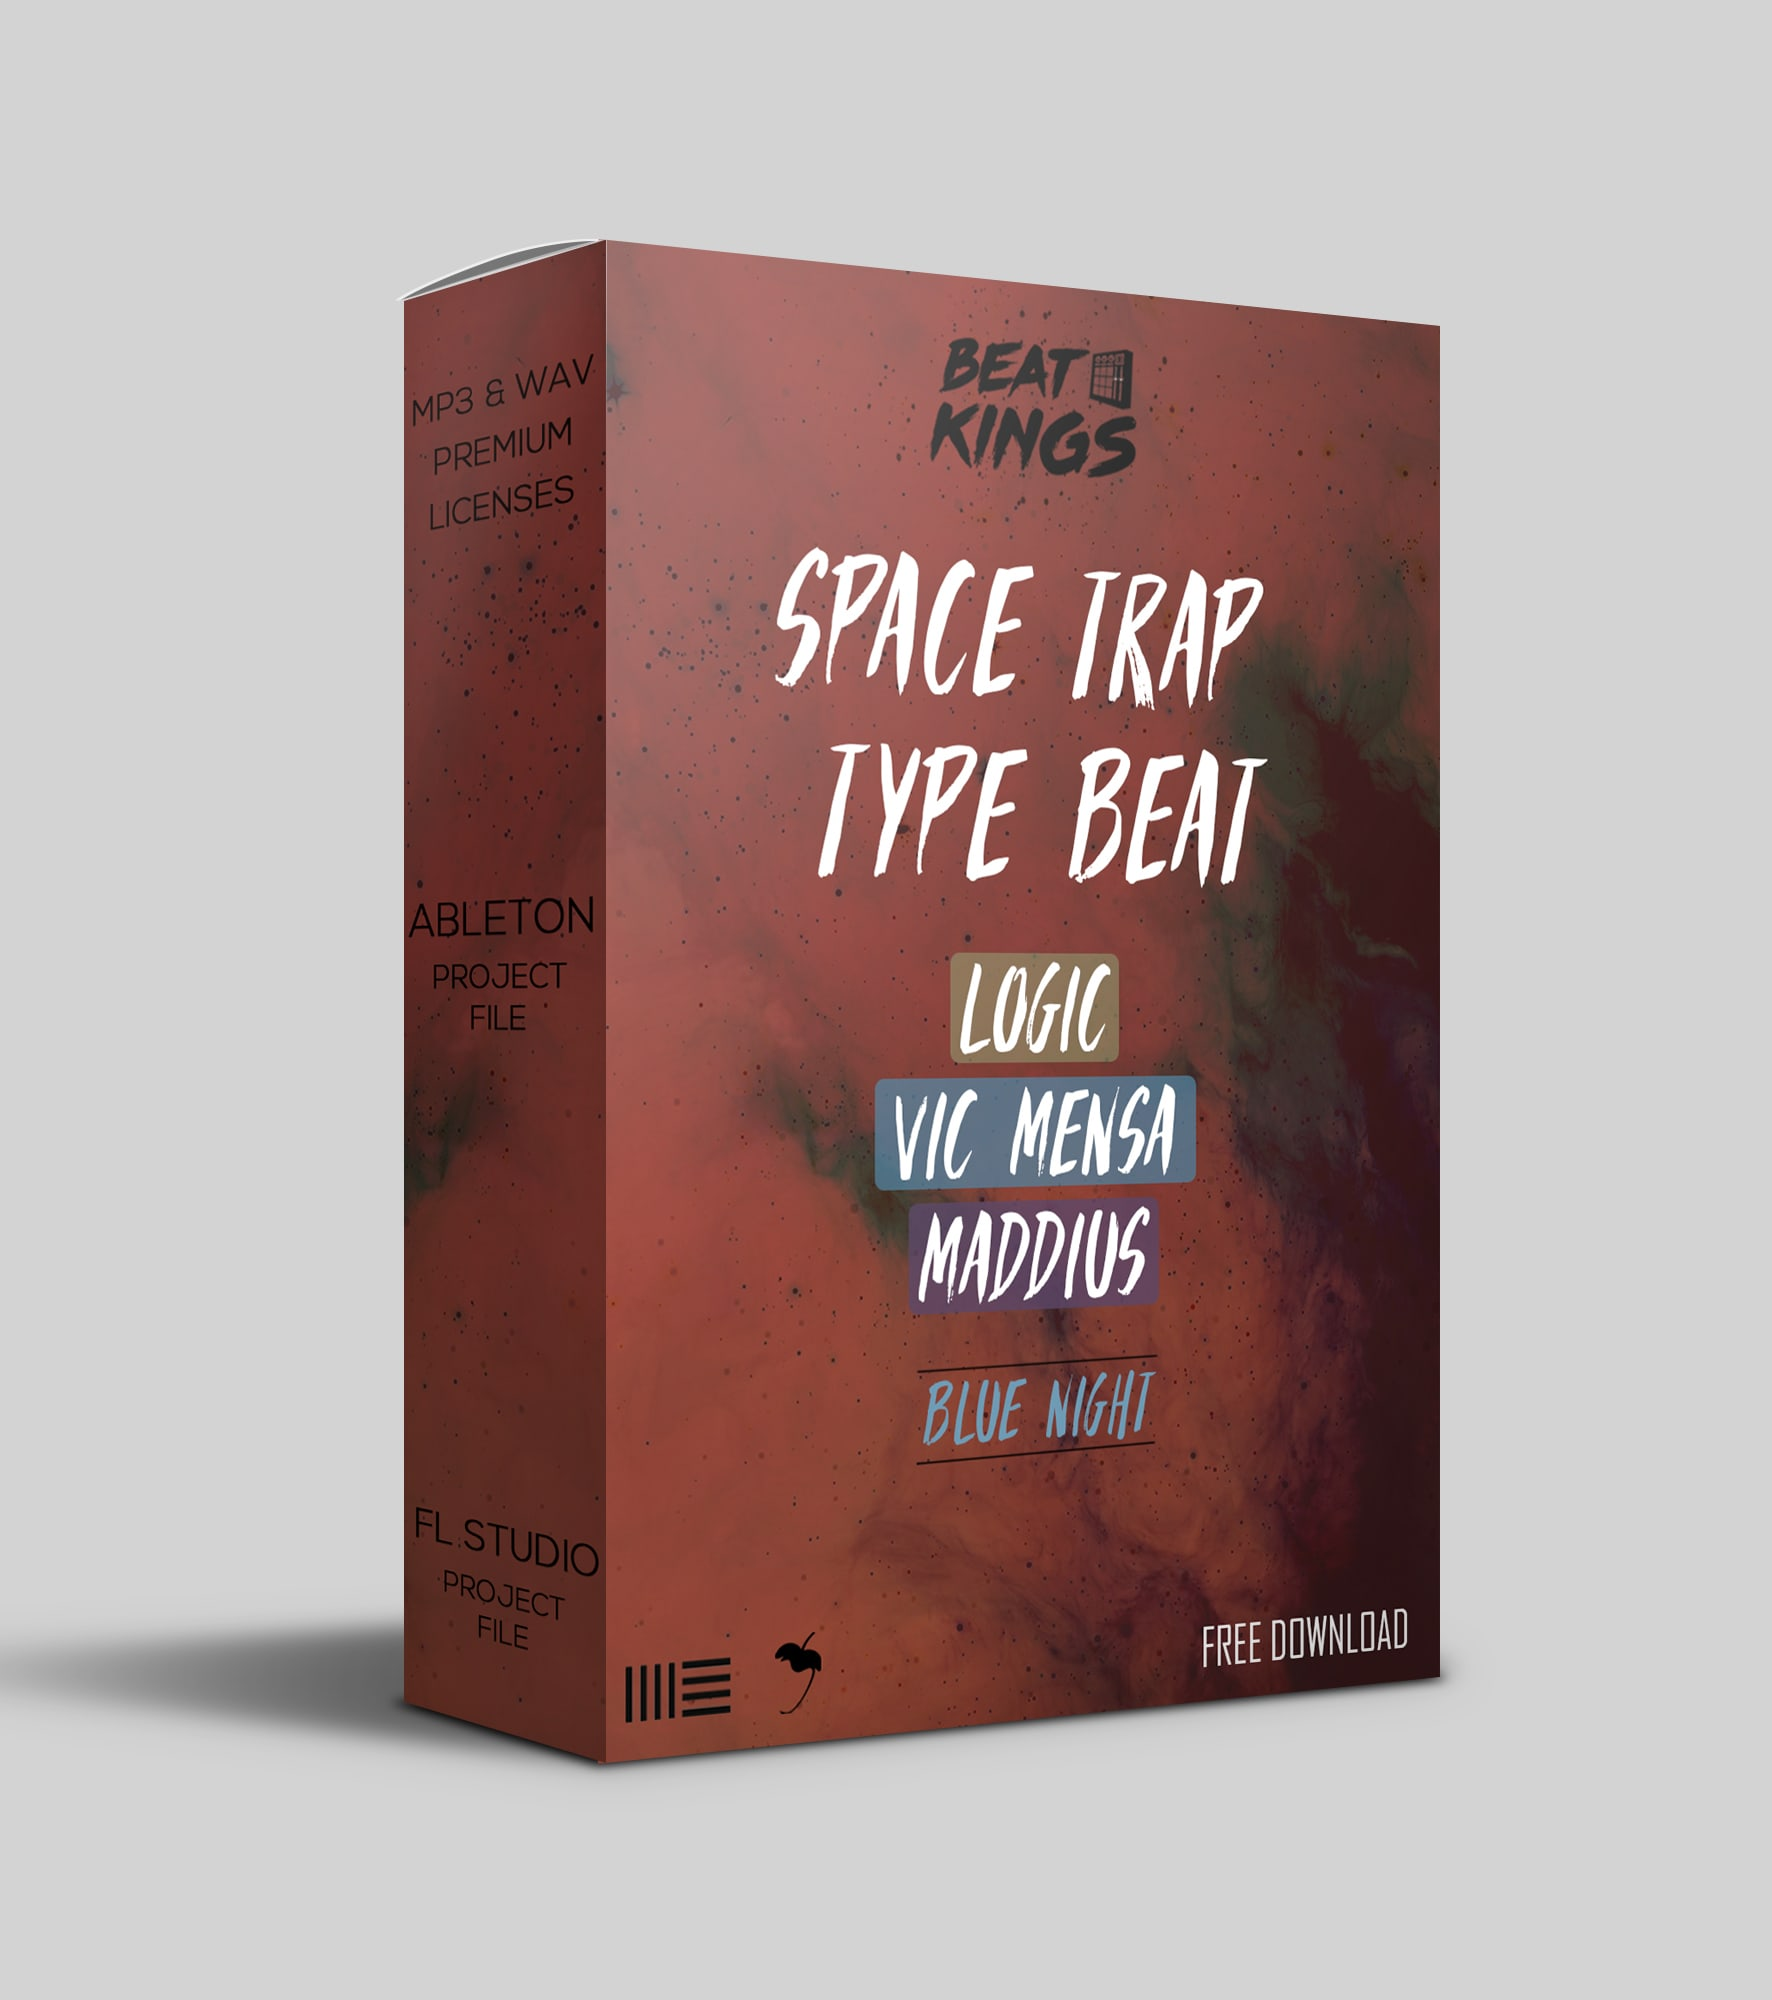 Space Trap Type Beat